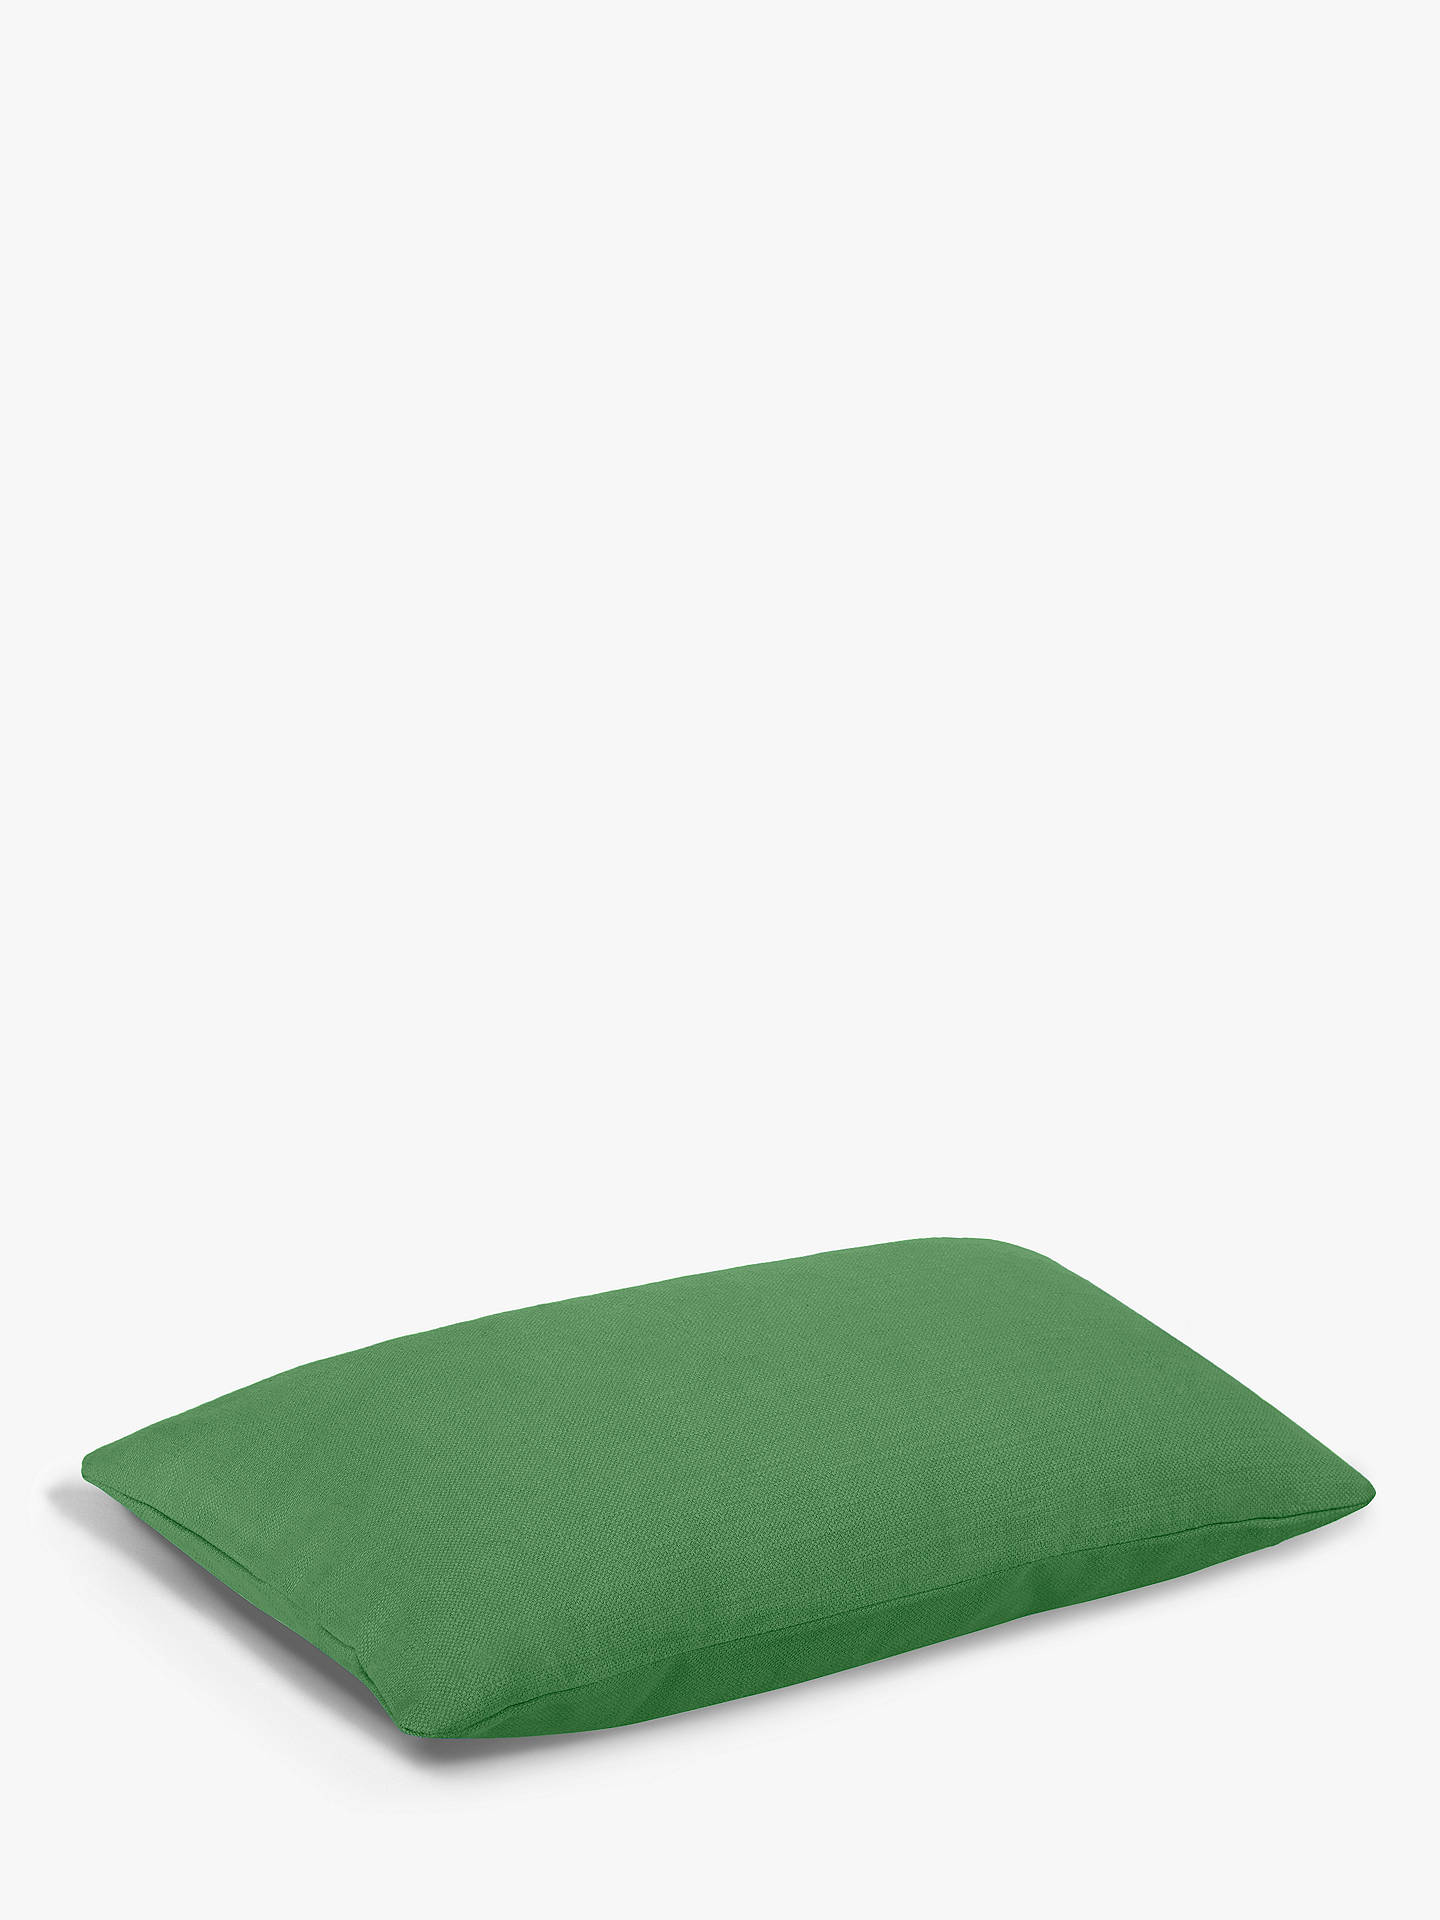 Buy Rectangular Stretch Scatter Cushion by Loaf at John Lewis, Brushed Cotton Clean Green Online at johnlewis.com